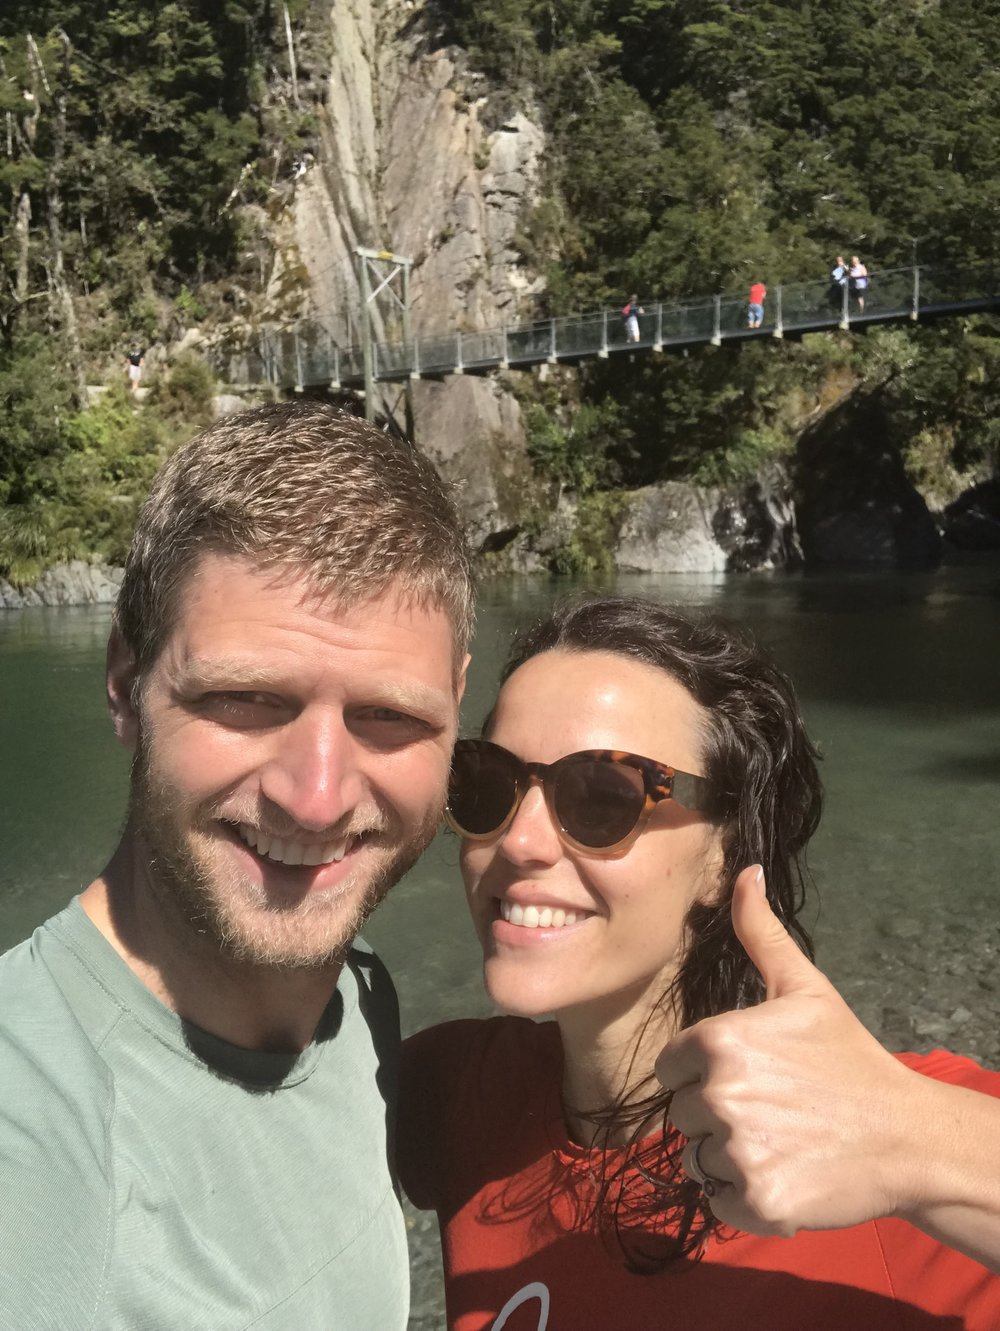 Hey! We just jumped off this bridge and are having a great time after a day stuck inside a camper van.